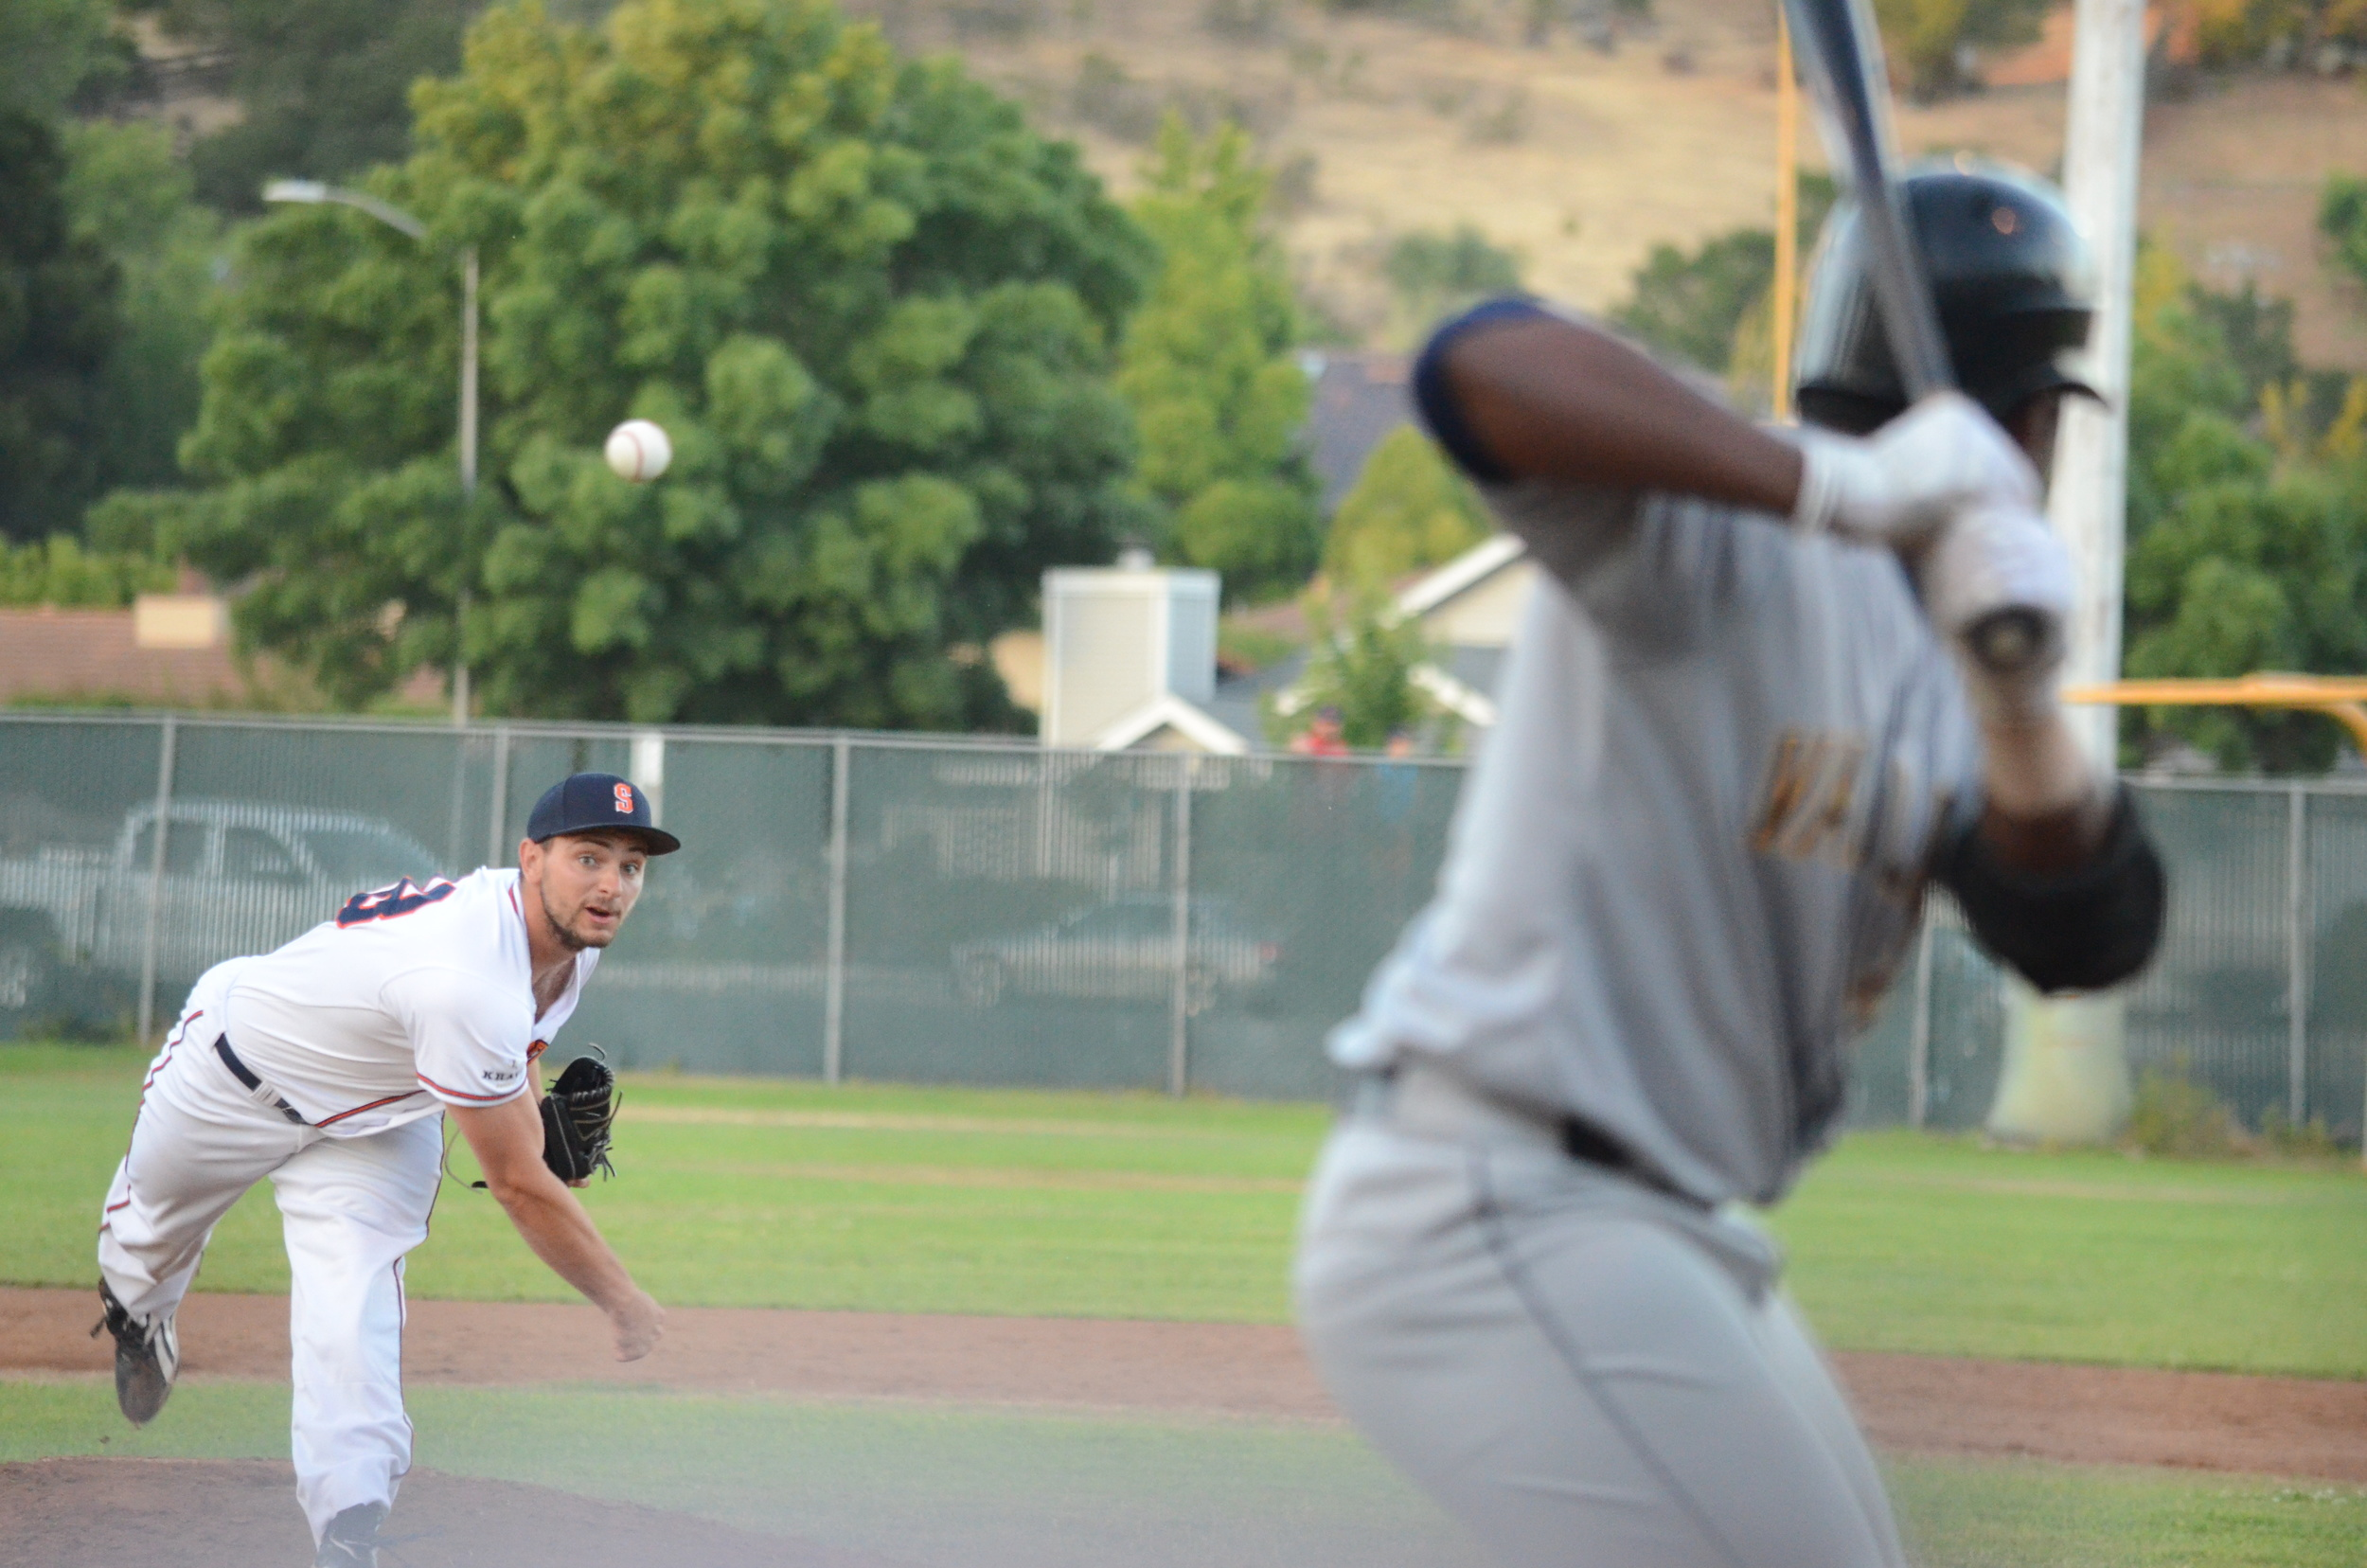 Eric Mozeika impressed with four shutout innings out of the bullpen in Sonoma's 8-4 win.   James Toy III/ Sonoma Stompers